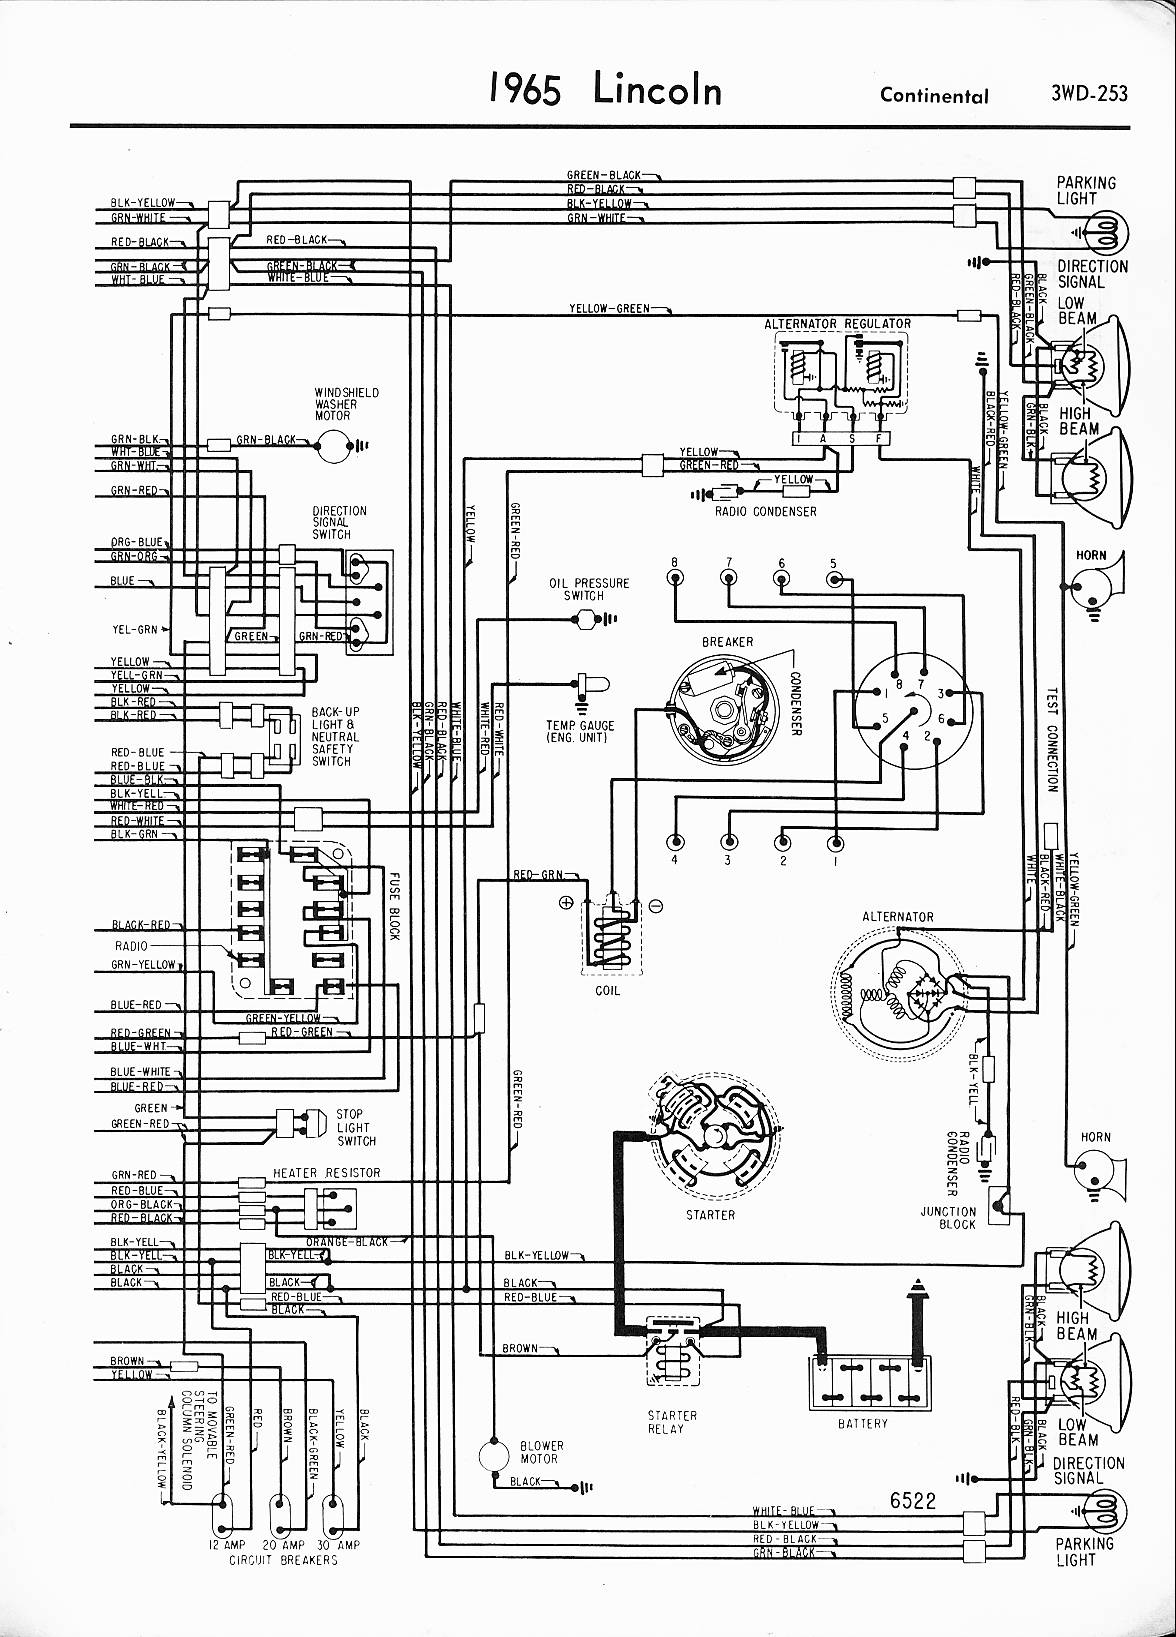 1994 Lincoln Wiring Diagrams Simple Wiring Diagram Lincoln Continental Horn  Schematics And Diagram 1991 Lincoln Continental Wiring Diagram Schematic